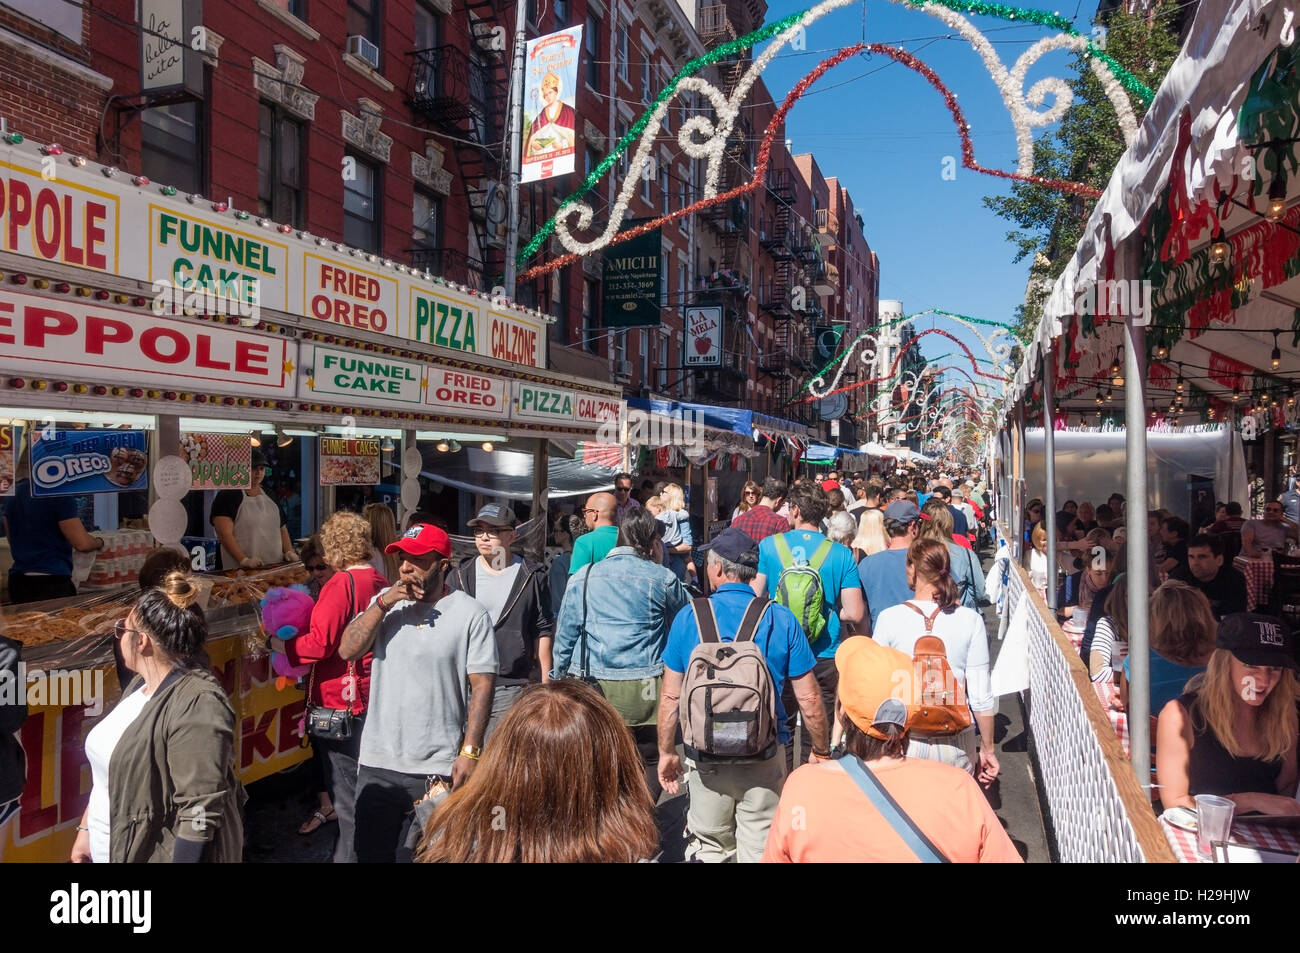 A crowd on Mulberry Street at the San Gennaro Feast in Little Italy in New York City - Stock Image